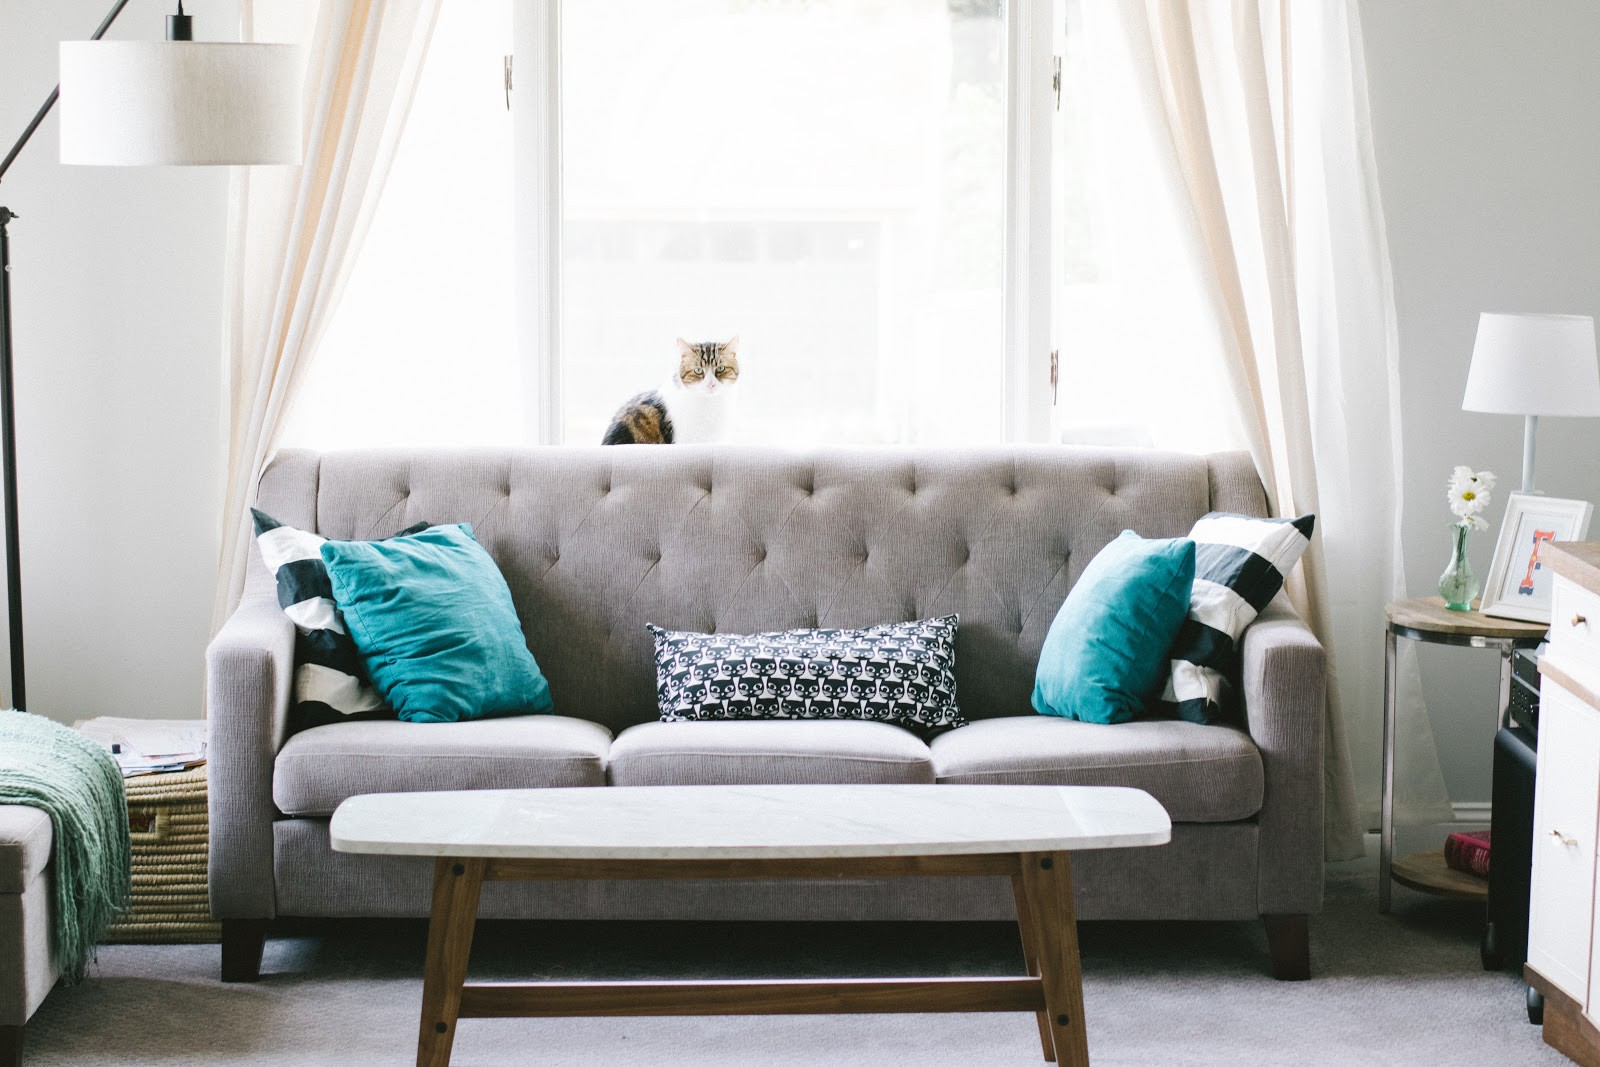 You Will Need To Keep In Mind The Size Of Your Space When Purchasing  Furniture. You Need The Essentials, But Less Furniture Also Creates A  Roomier Feel.